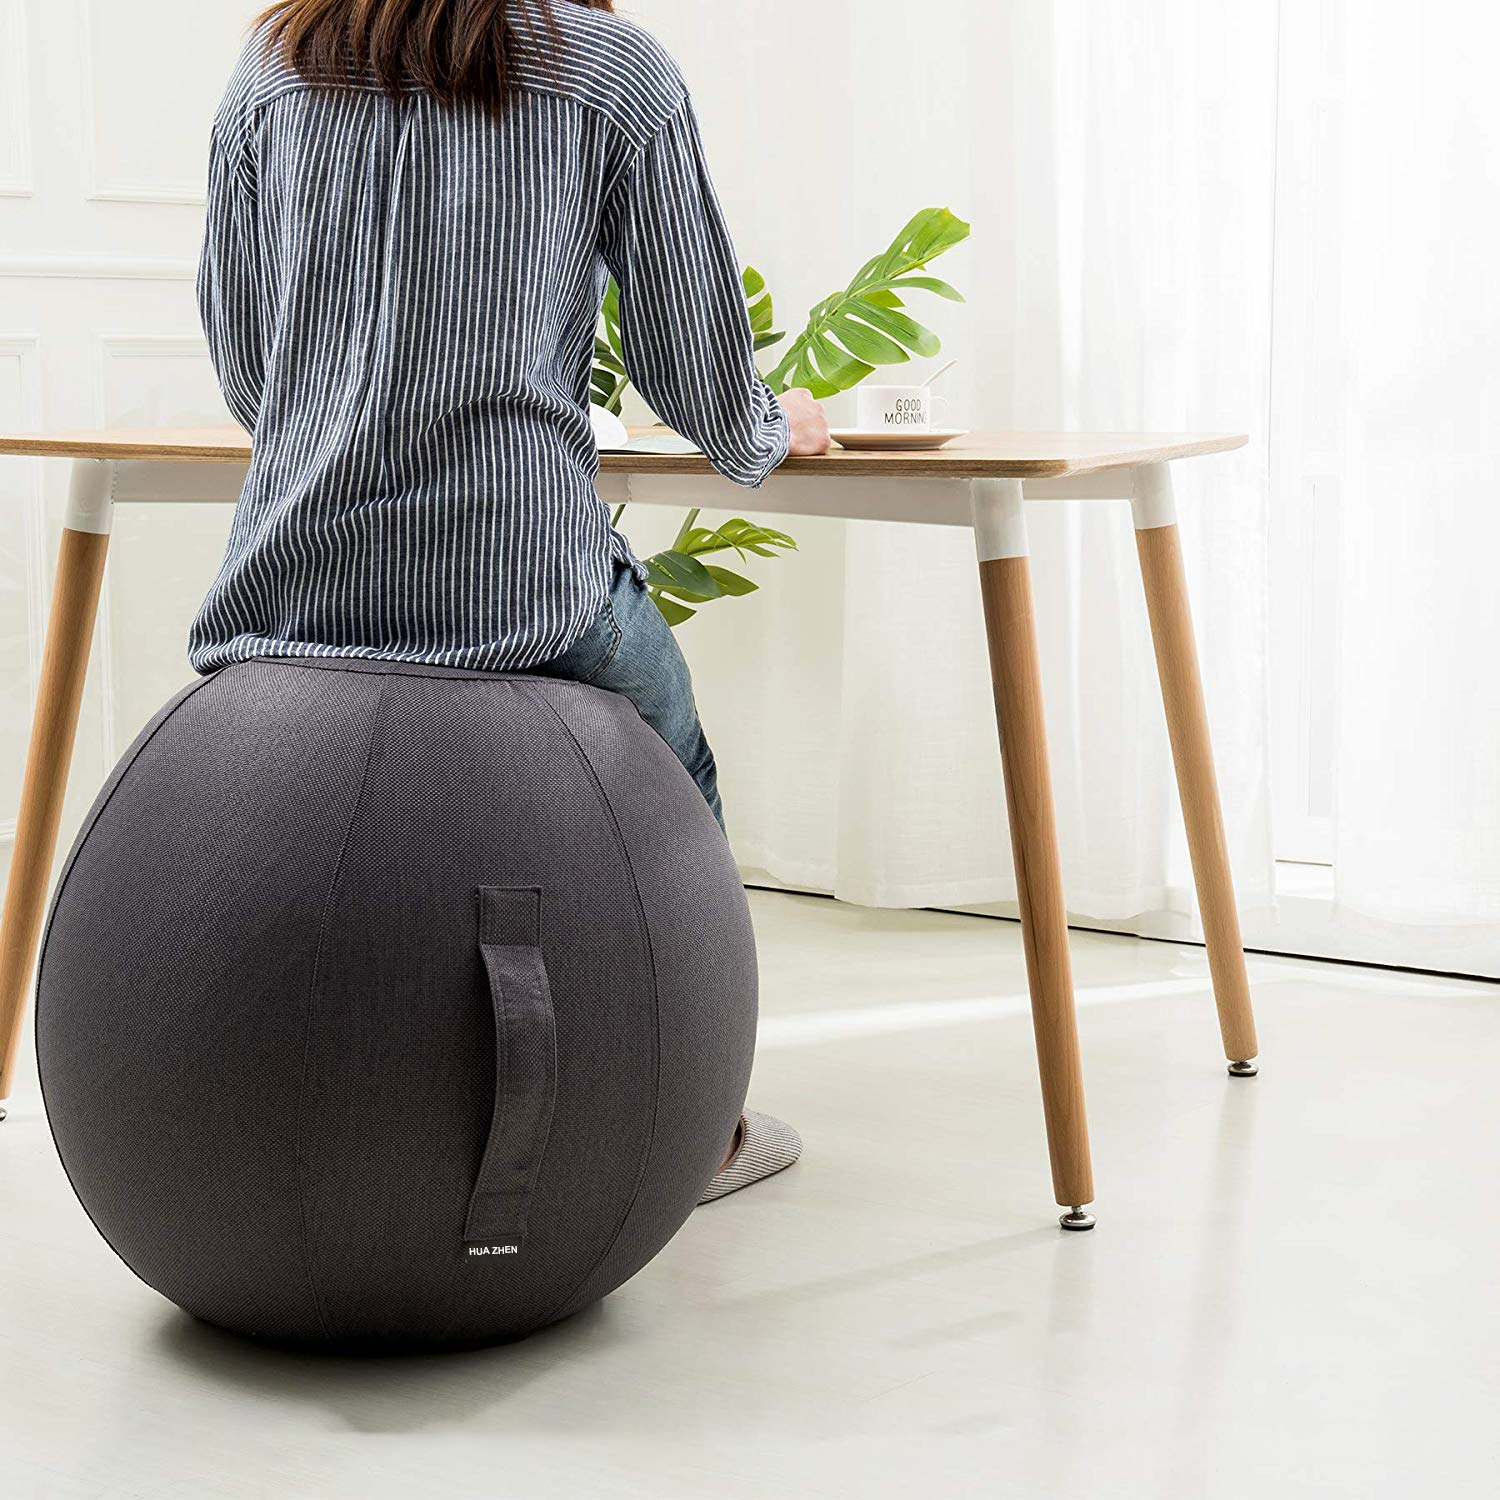 Amazon top seller <strong>yoga</strong> <strong>ball</strong> cover sitting <strong>ball</strong> chair with pump handle